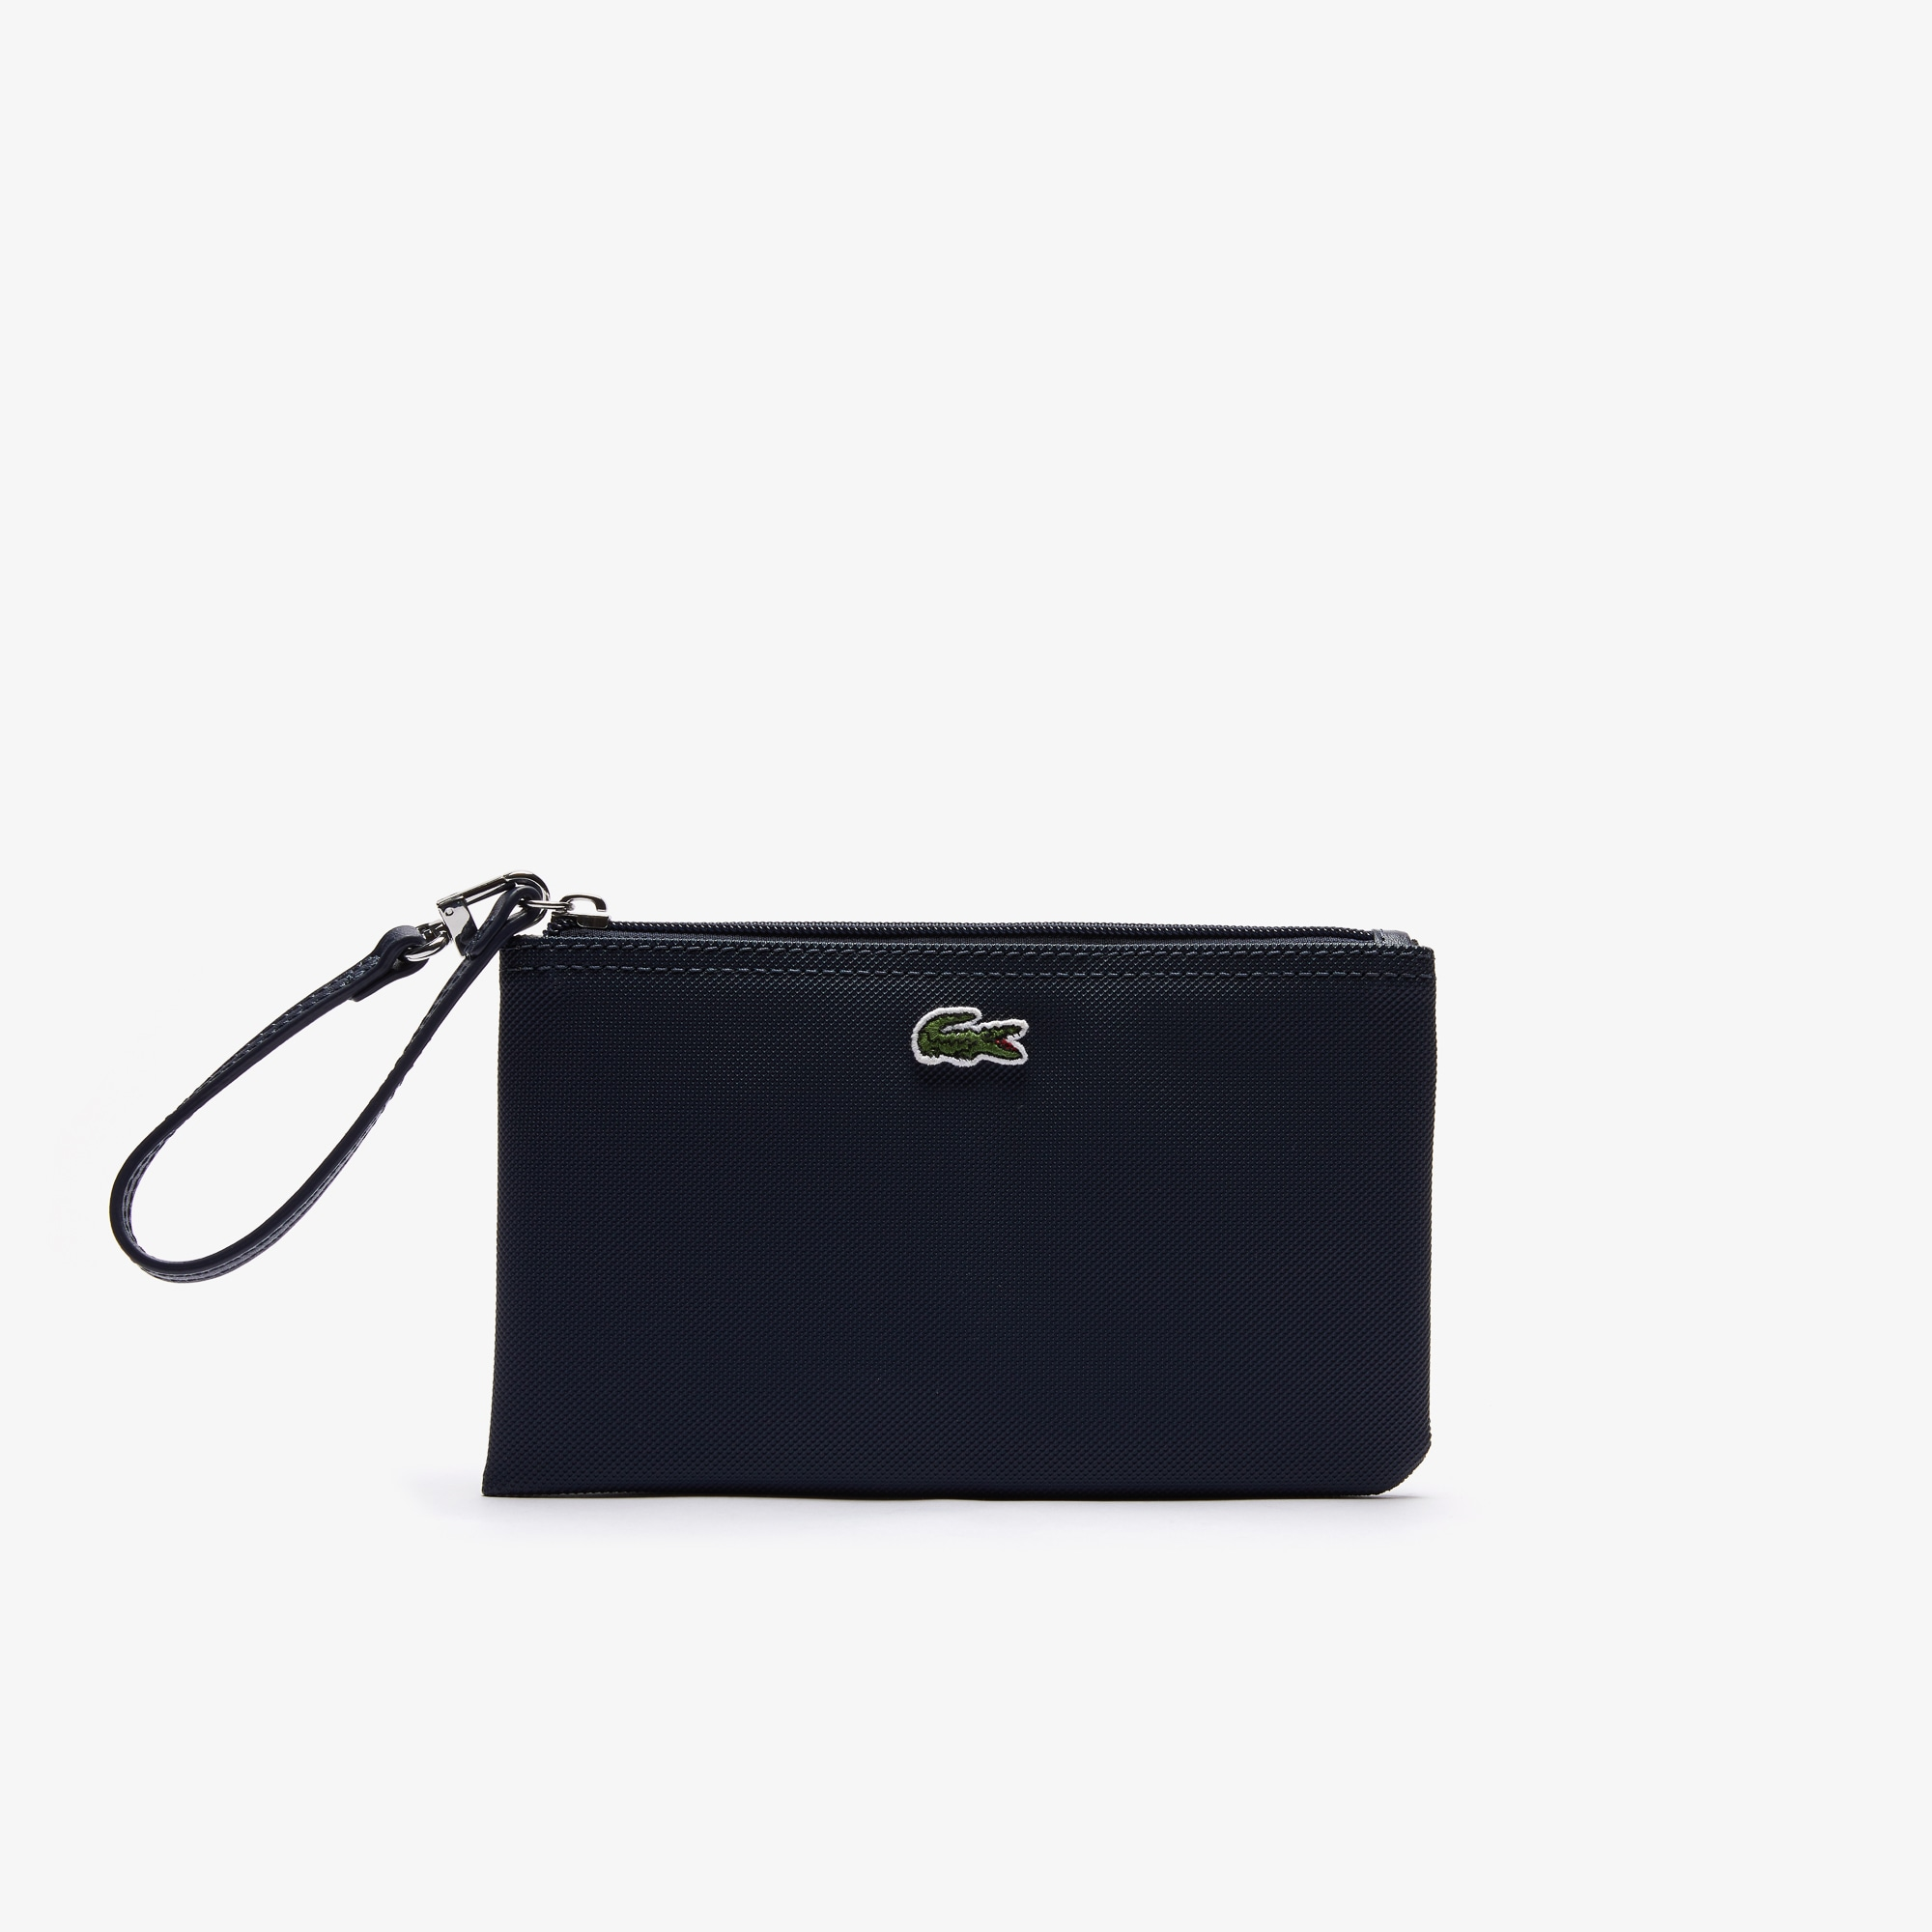 Women's L.12.12 Concept Zip Clutch Bag